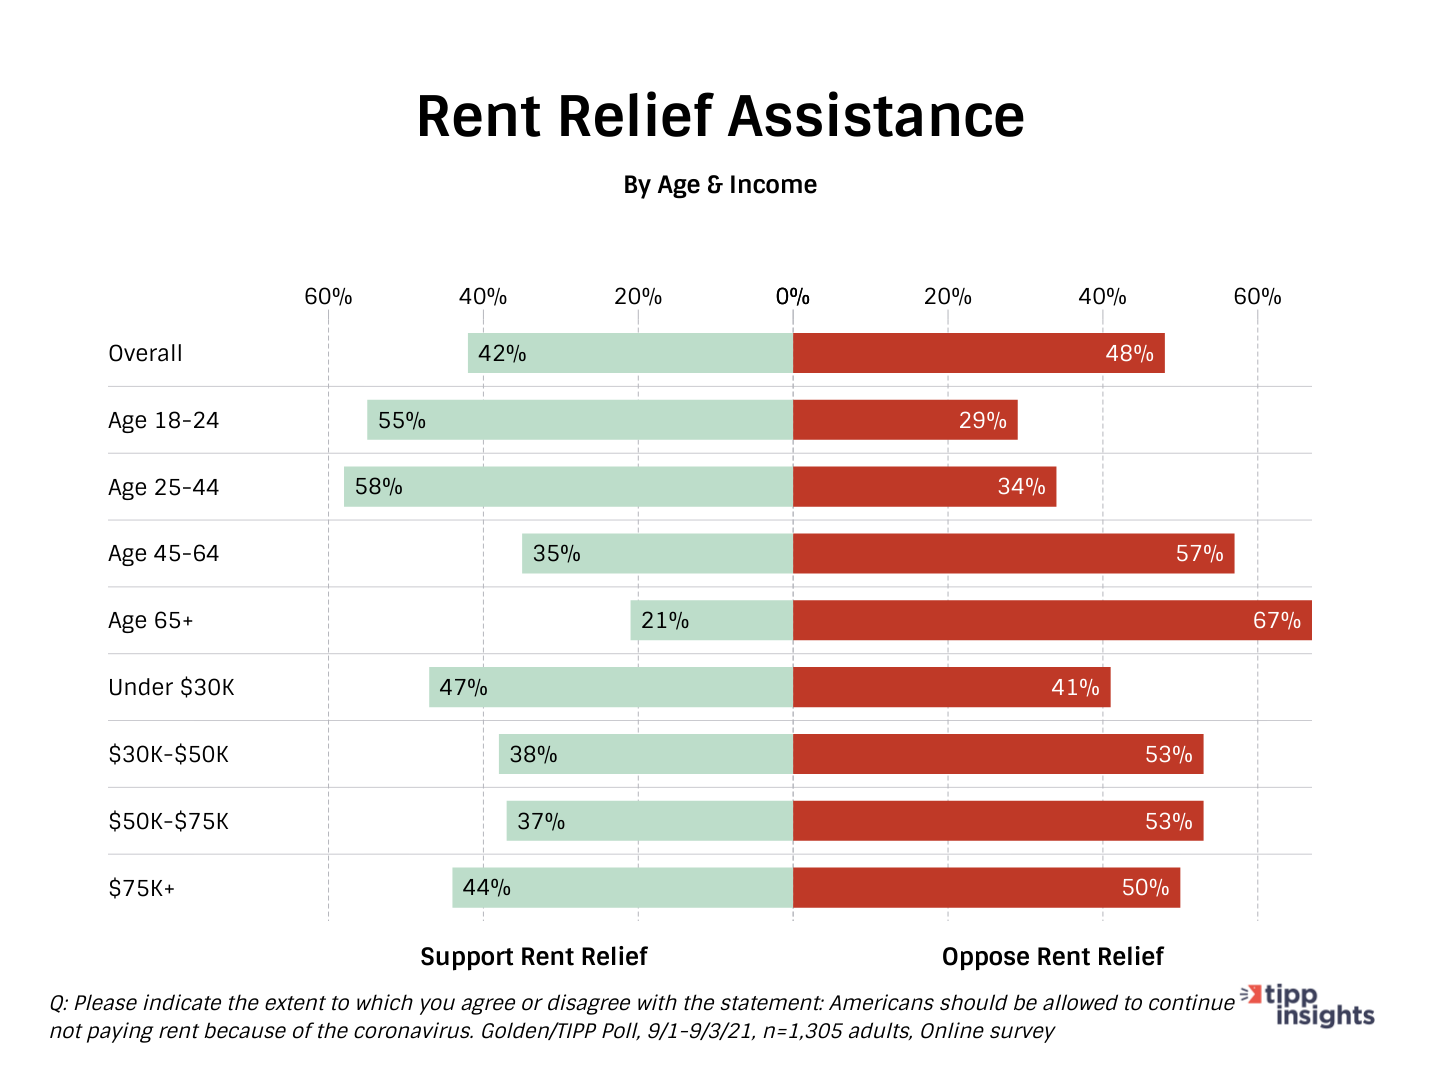 TIPP/Golden Poll results: Americans in support or opposition of rent relief assistance